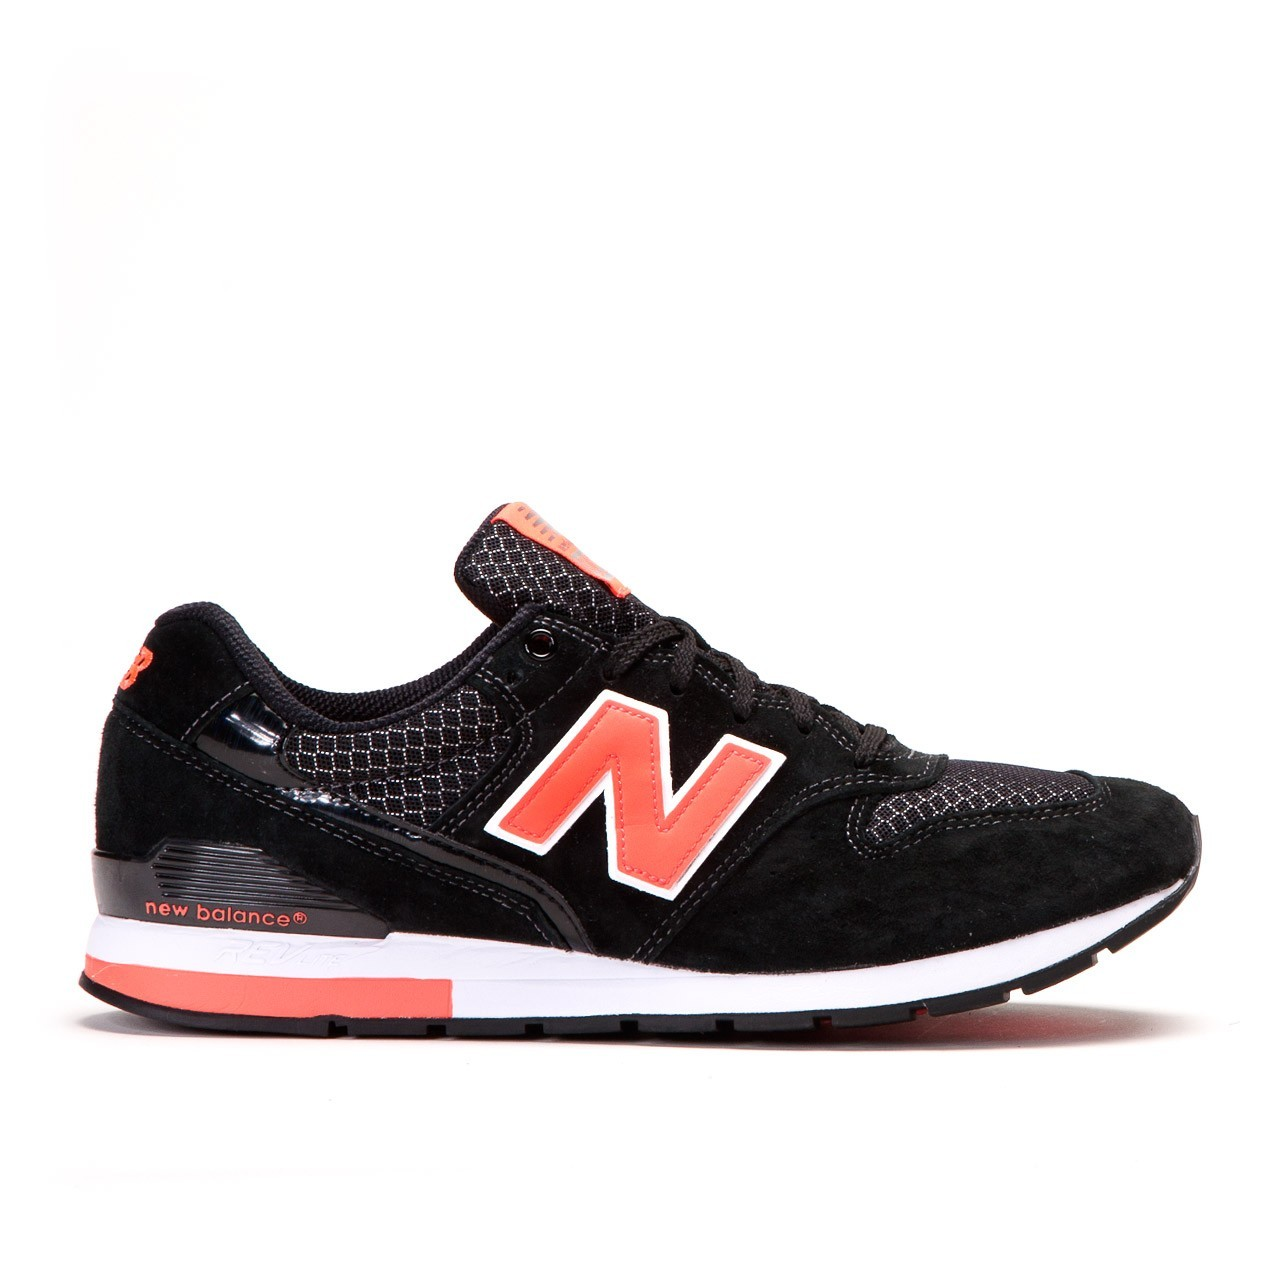 New Balance MRL 996 EP REVlite Womens Trainers Prism Violet Black Coral White